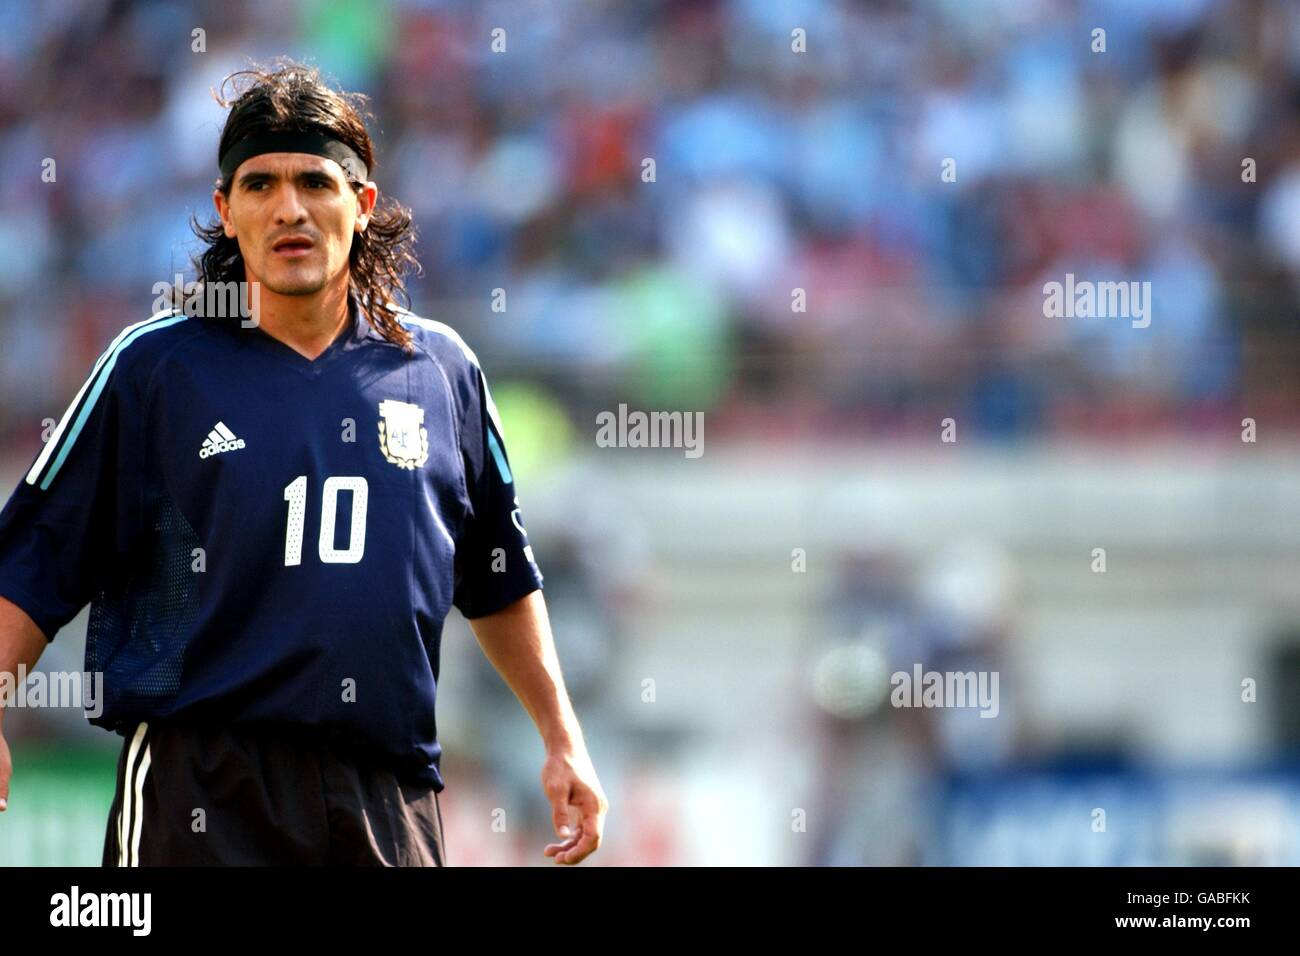 02db1b641 Soccer - FIFA World Cup 2002 - Group F - Argentina v Nigeria - Stock Image